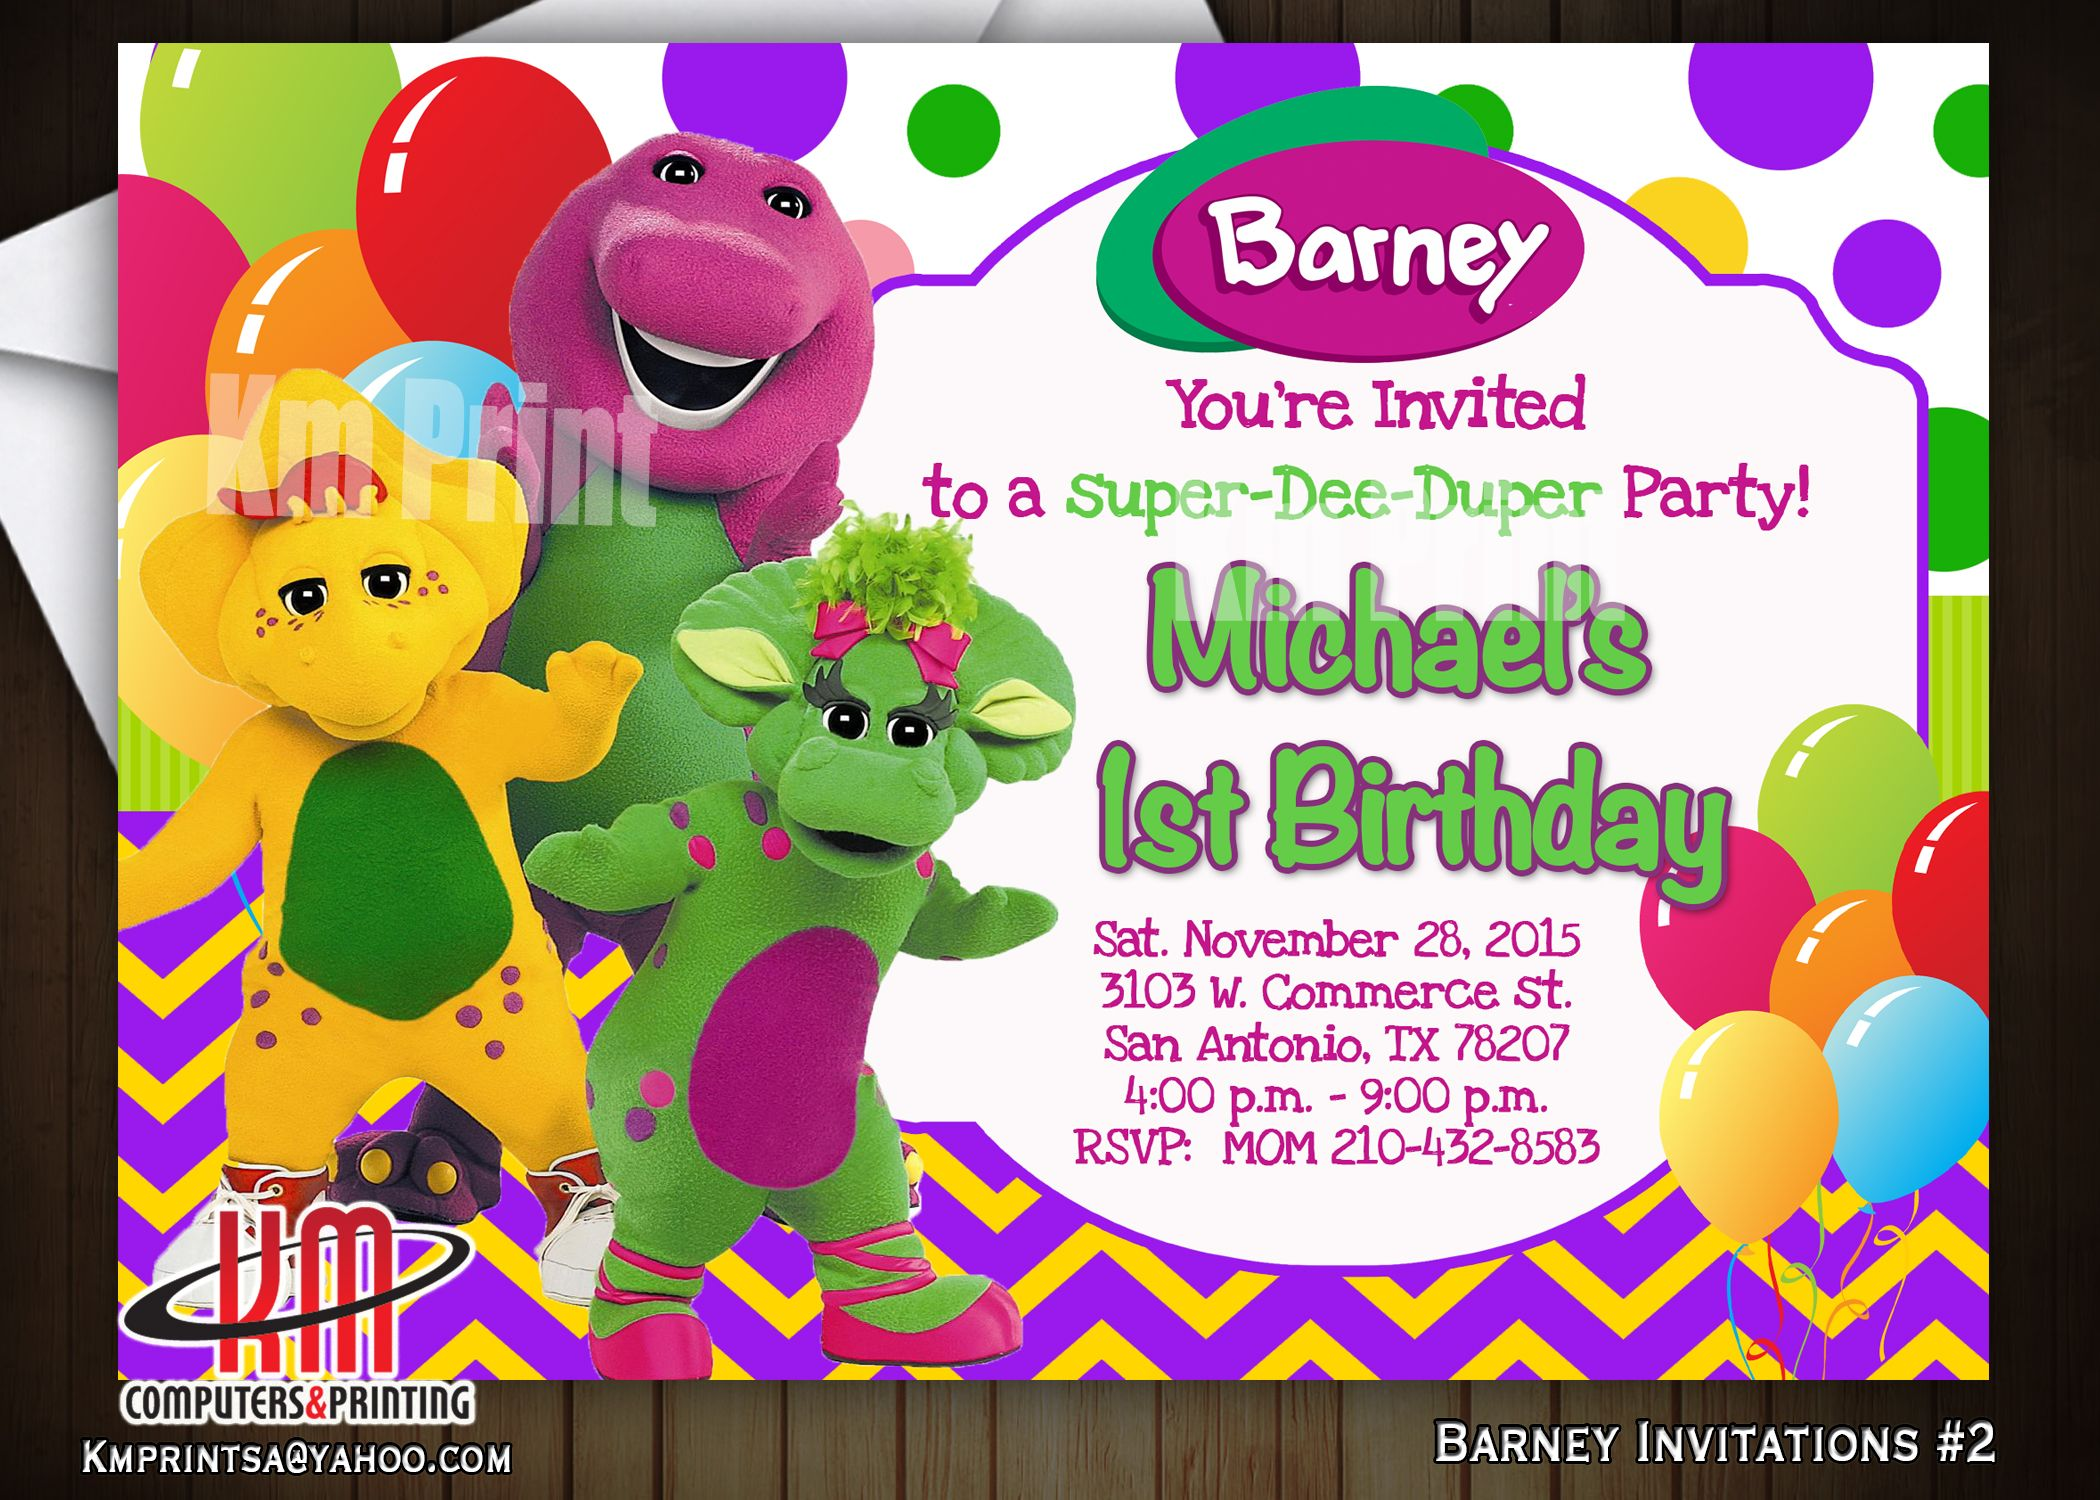 Barney birthday invitation2 digital 10 u print kmprint210 barney birthday invitation2 digital 10 u print kmprint210gmail monicamarmolfo Images